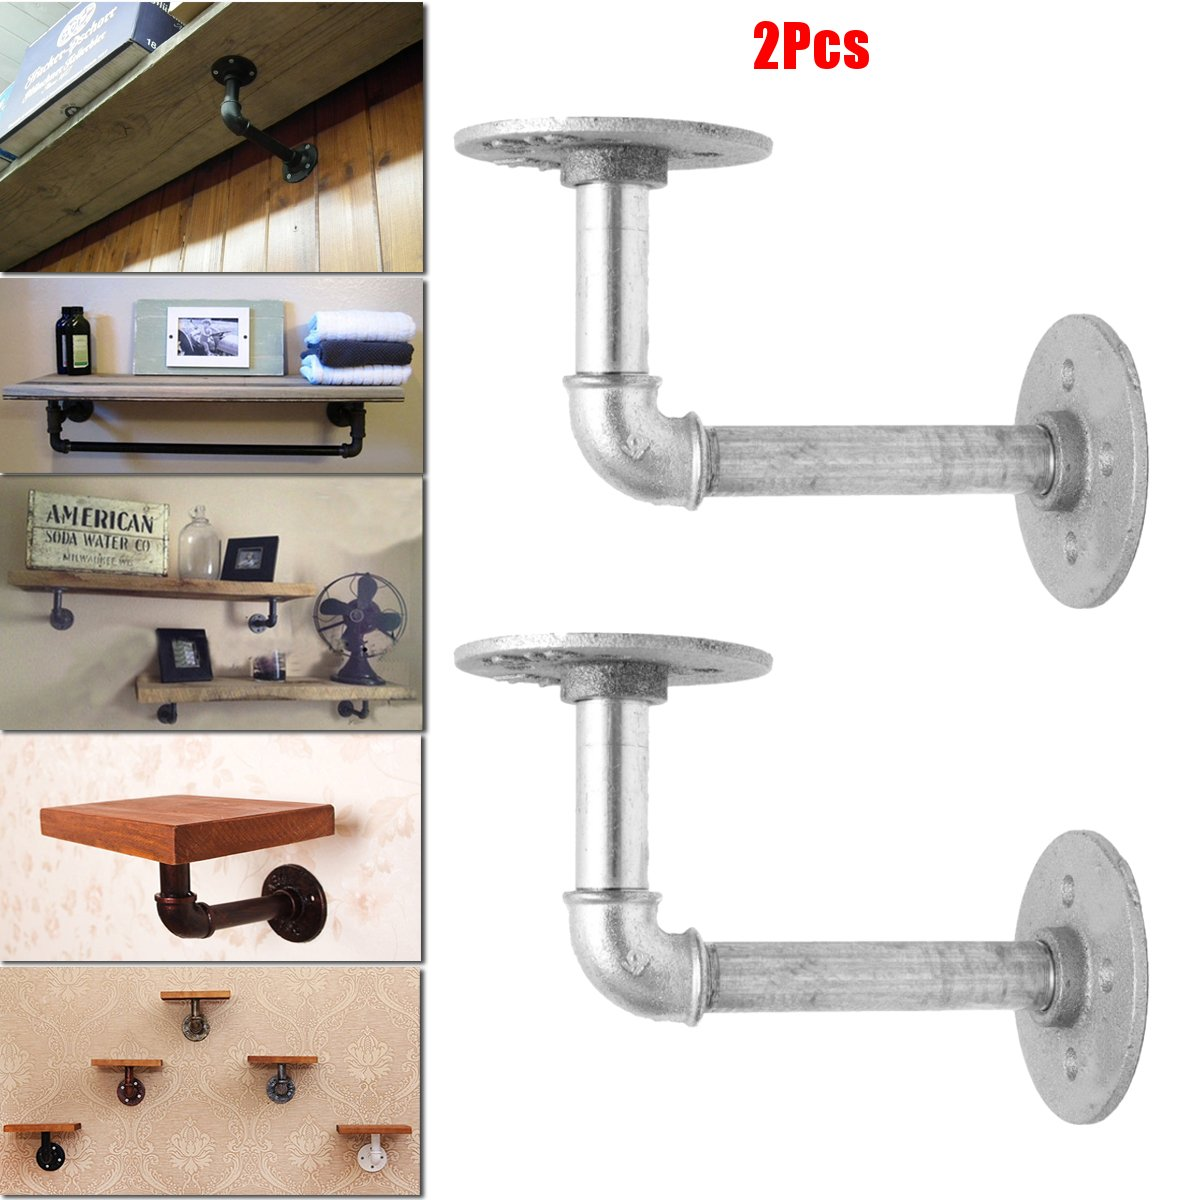 KING DO WAY 2PCS Pipe Shelf Bracket Industrial Shelf Bracket for Book Shop Shelf Shose Shop Shelf Custom shelves Floating Shelves Plumbing Pipe Shelf Restoration Hardware Shelf (12x17cm)